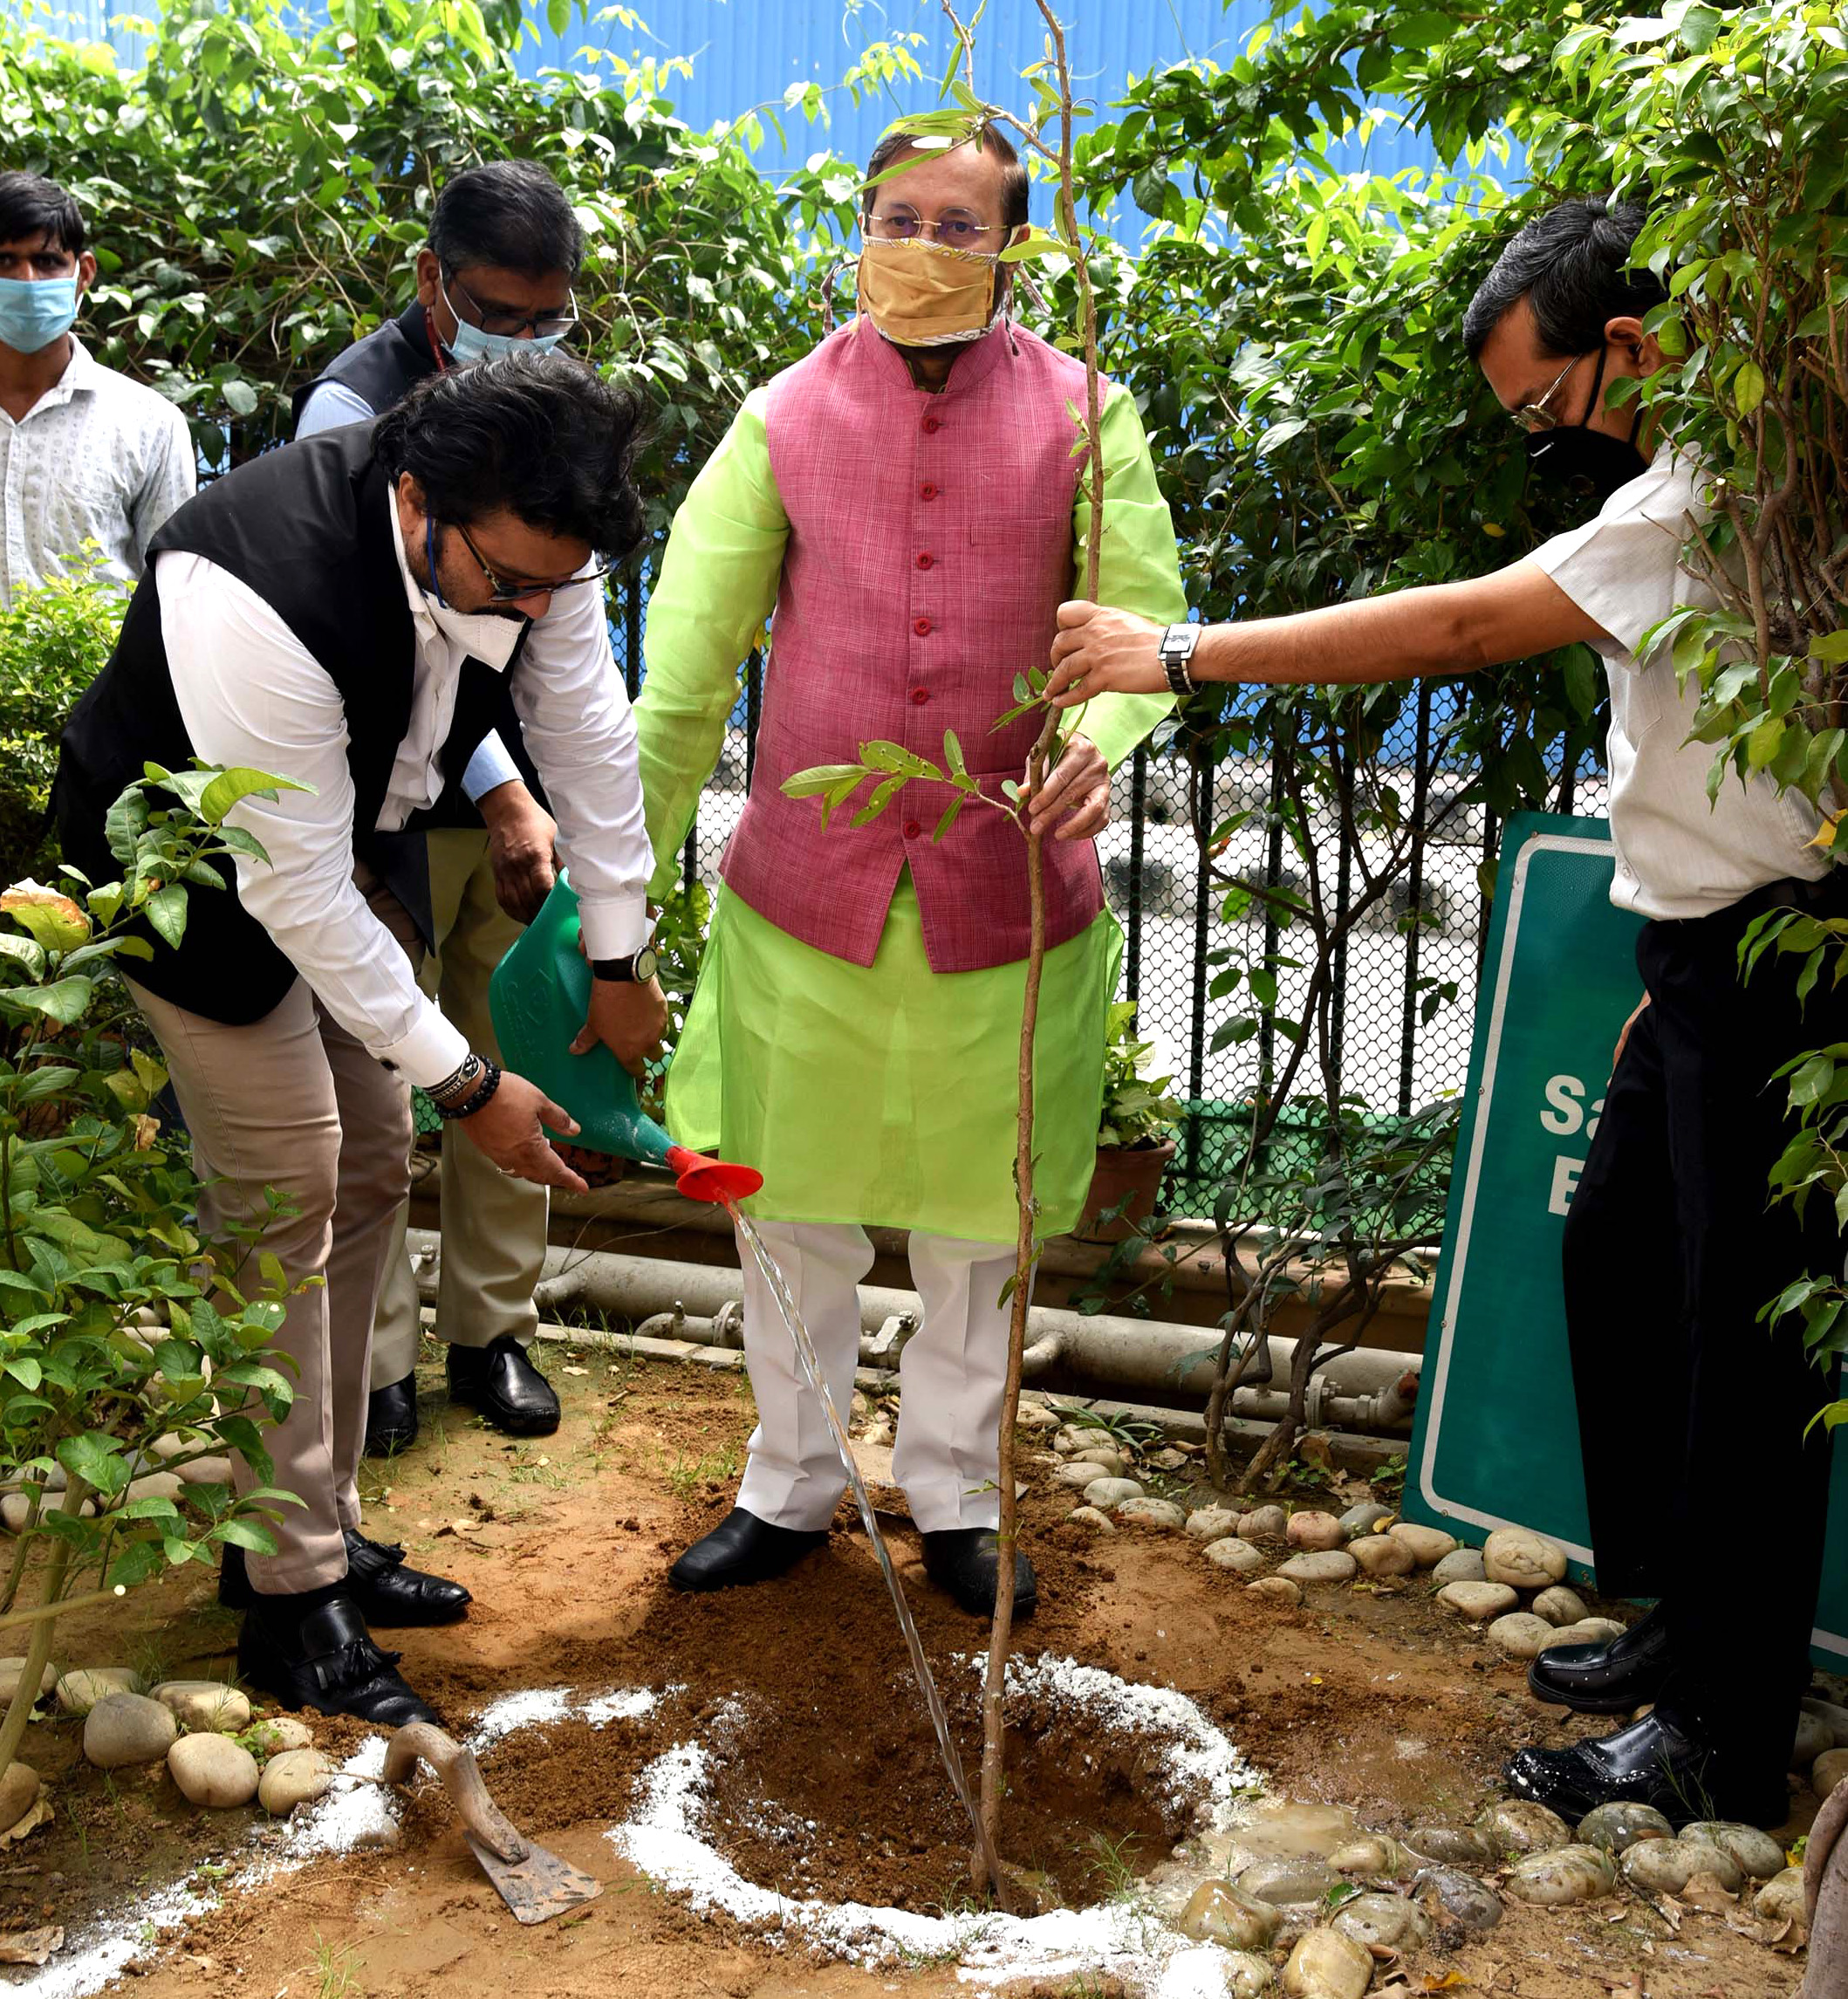 The Union Minister for Environment, Forest & Climate Change, Information & Broadcasting and Heavy Industries and Public Enterprise, Shri Prakash Javadekar planting a sapling at the virtual celebration of the World Environment Day, 2020 with focus on Nagar Van (Urban Forest) on the theme 'Biodiversity', in New Delhi on June 05, 2020. The Minister of State for Environment, Forest and Climate Change, Shri Babul Supriyo and the Secretary, Ministry of Environment, Forest & Climate Change, Shri R.P. Gupta are also seen.